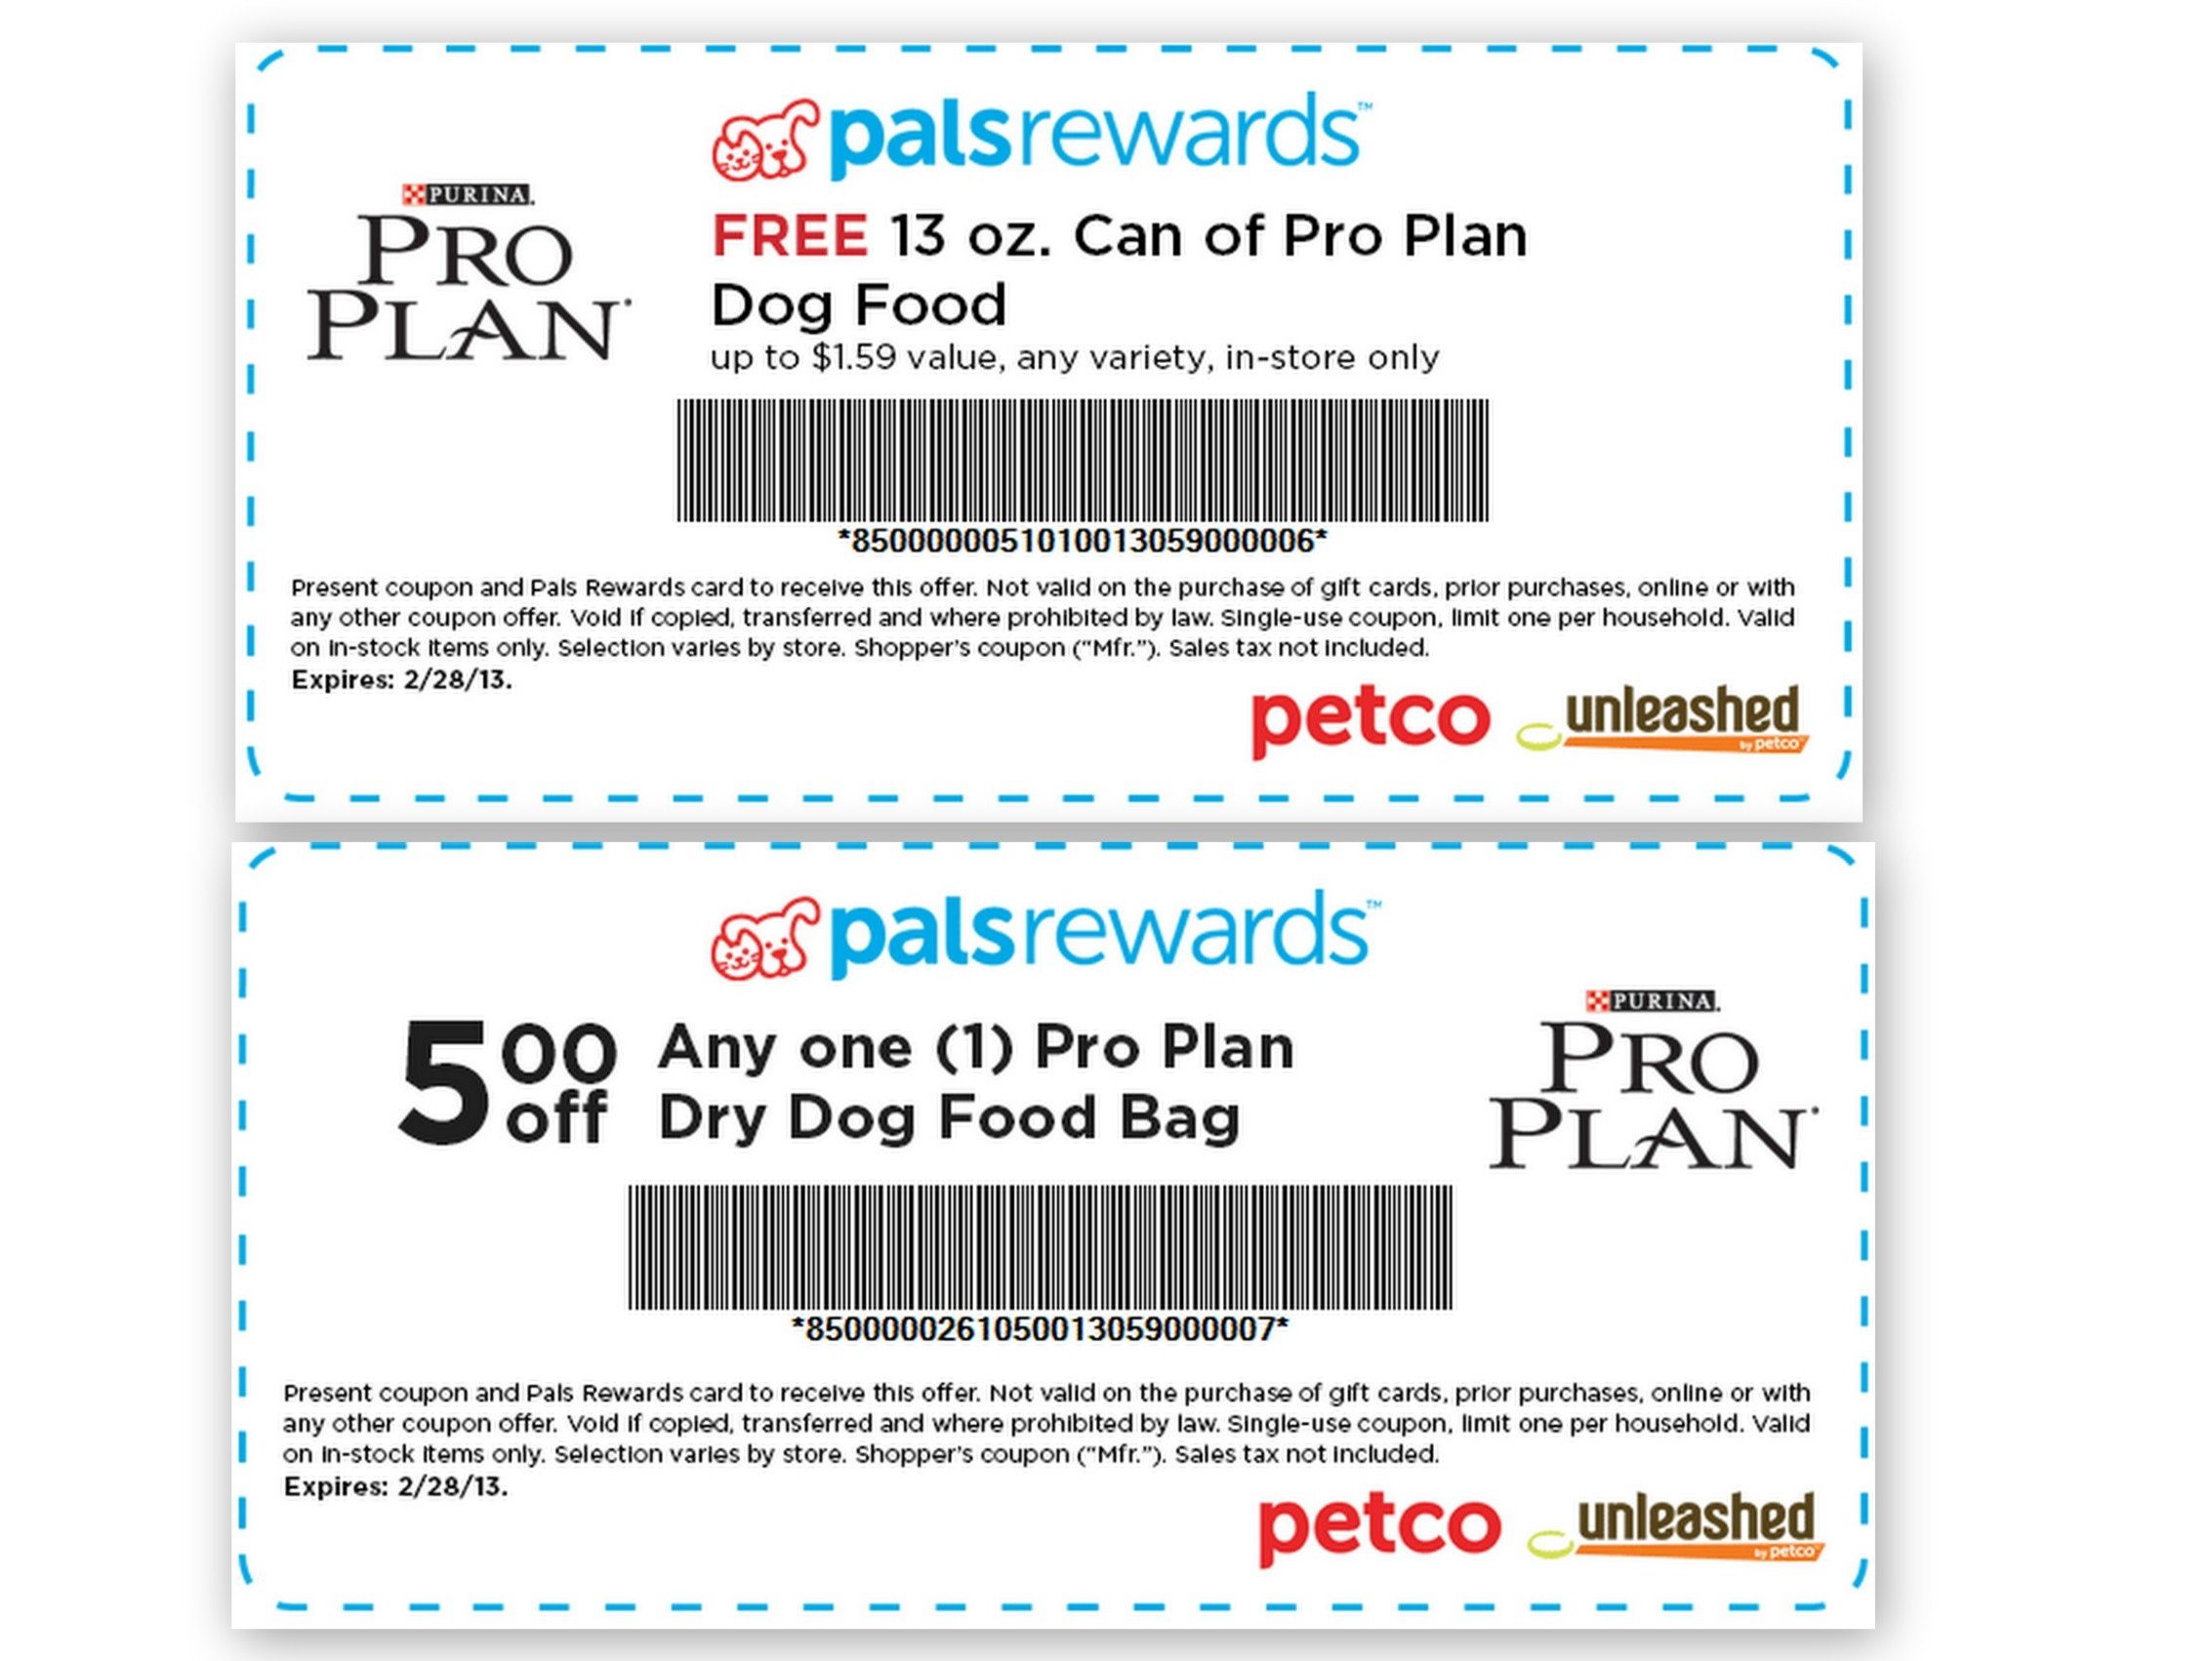 Pro Plan Dog Food Coupons | 2017 - 2018 Best Cars Reviews